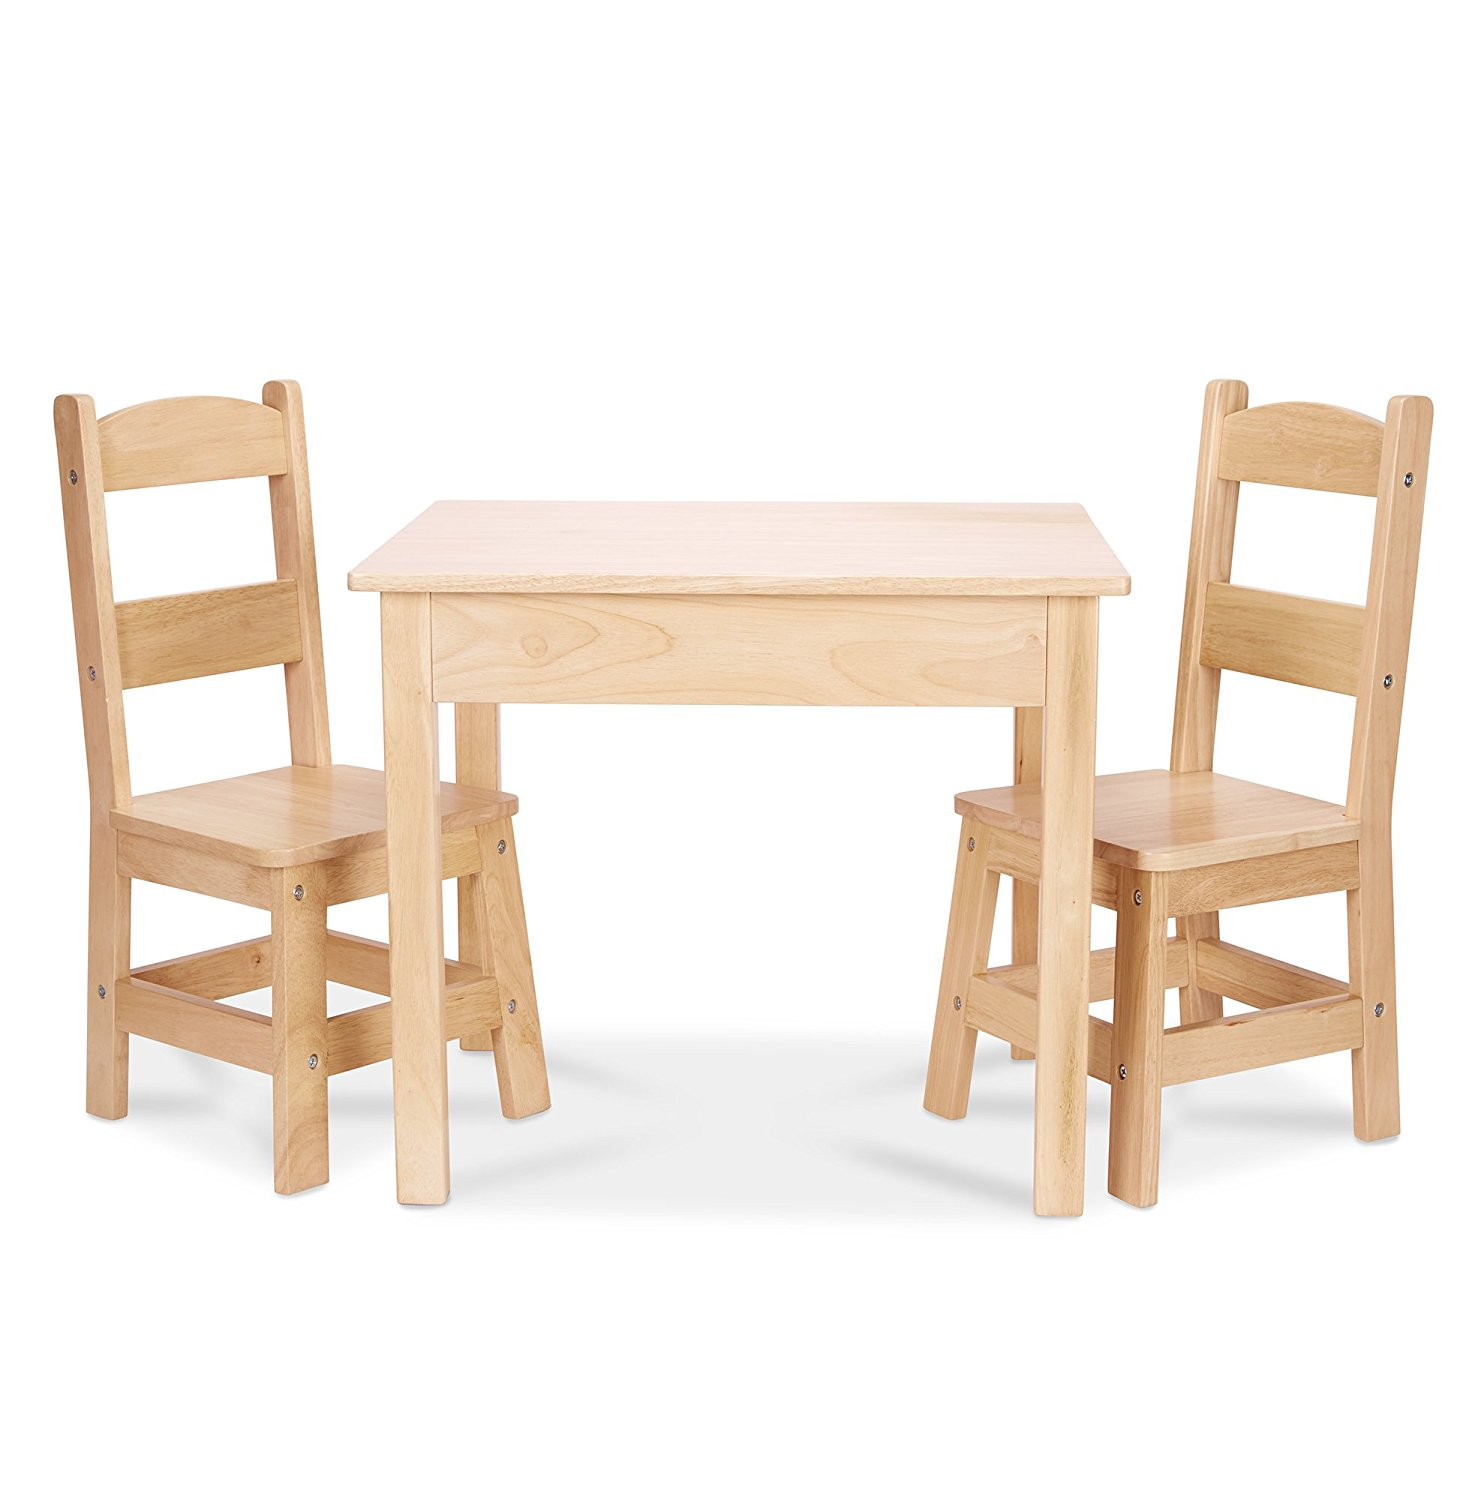 Wooden Table And Chairs Melissa And Doug Solid Wood Table And 2 Chairs Set Light